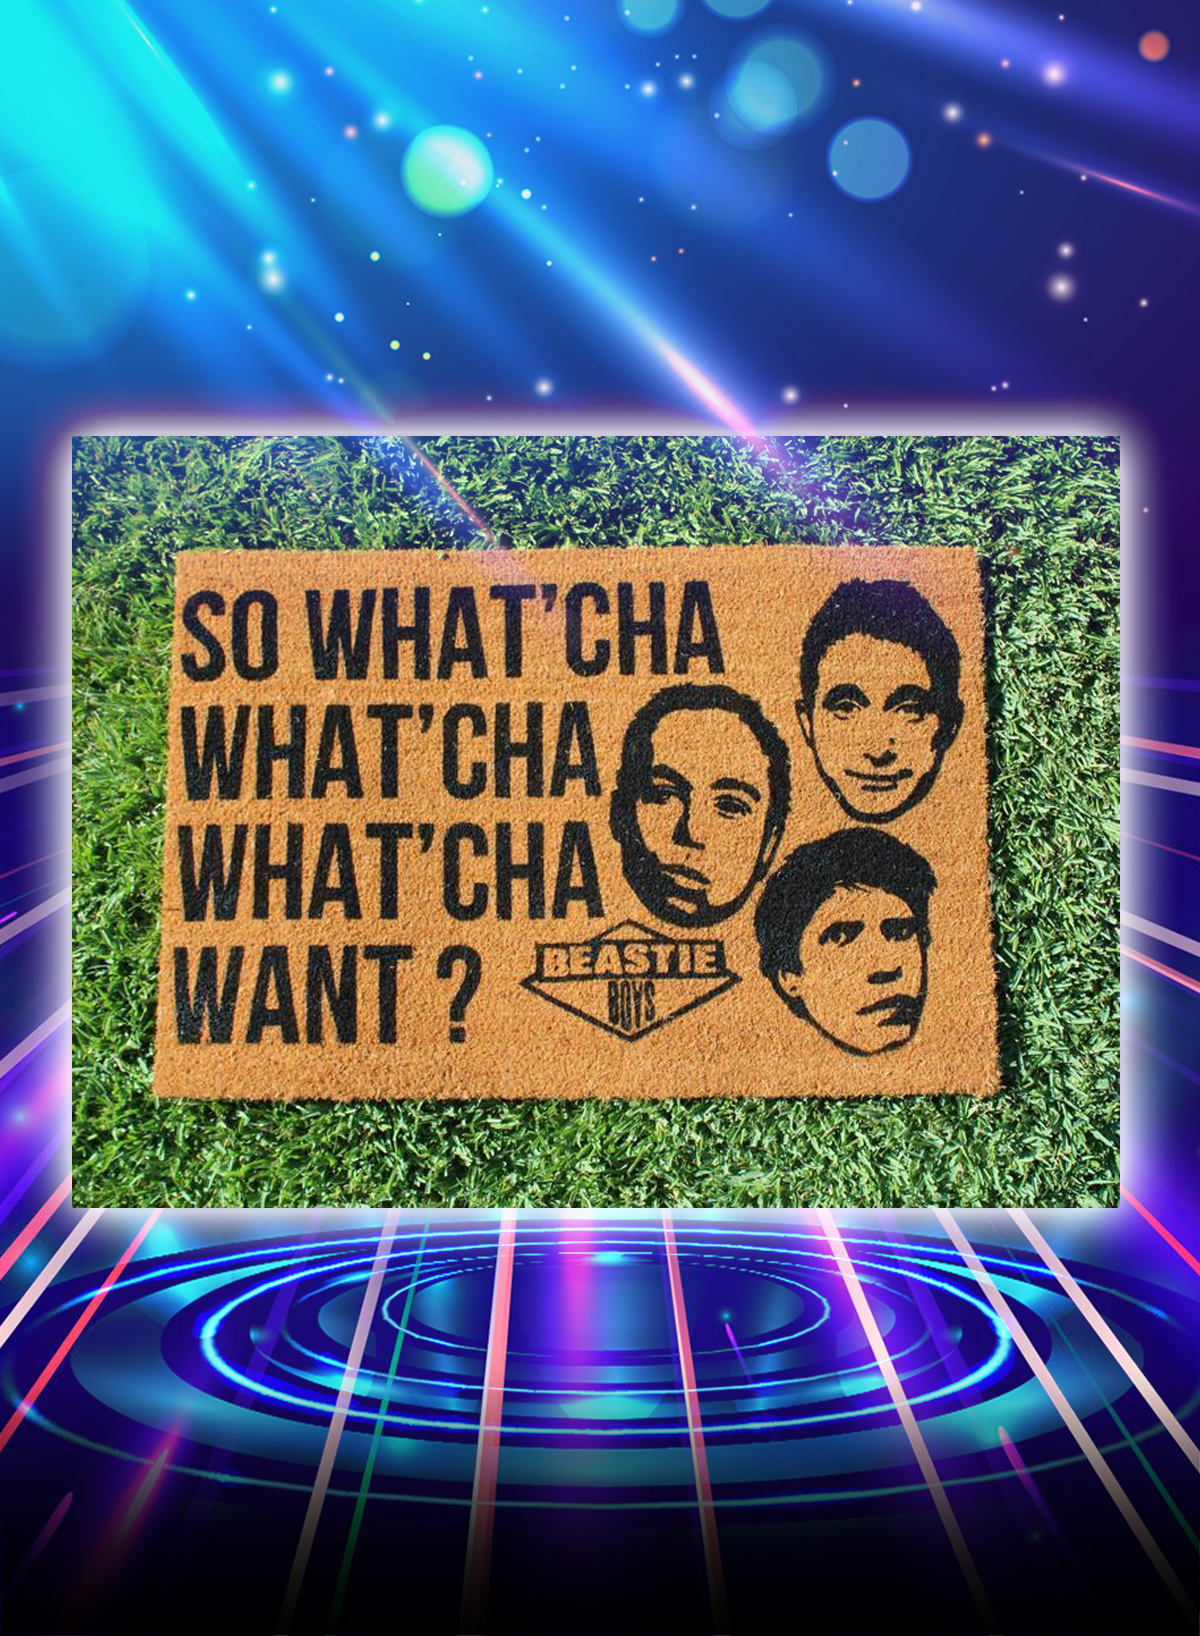 Beastie Boys so what'cha what'cha what'cha want doormat